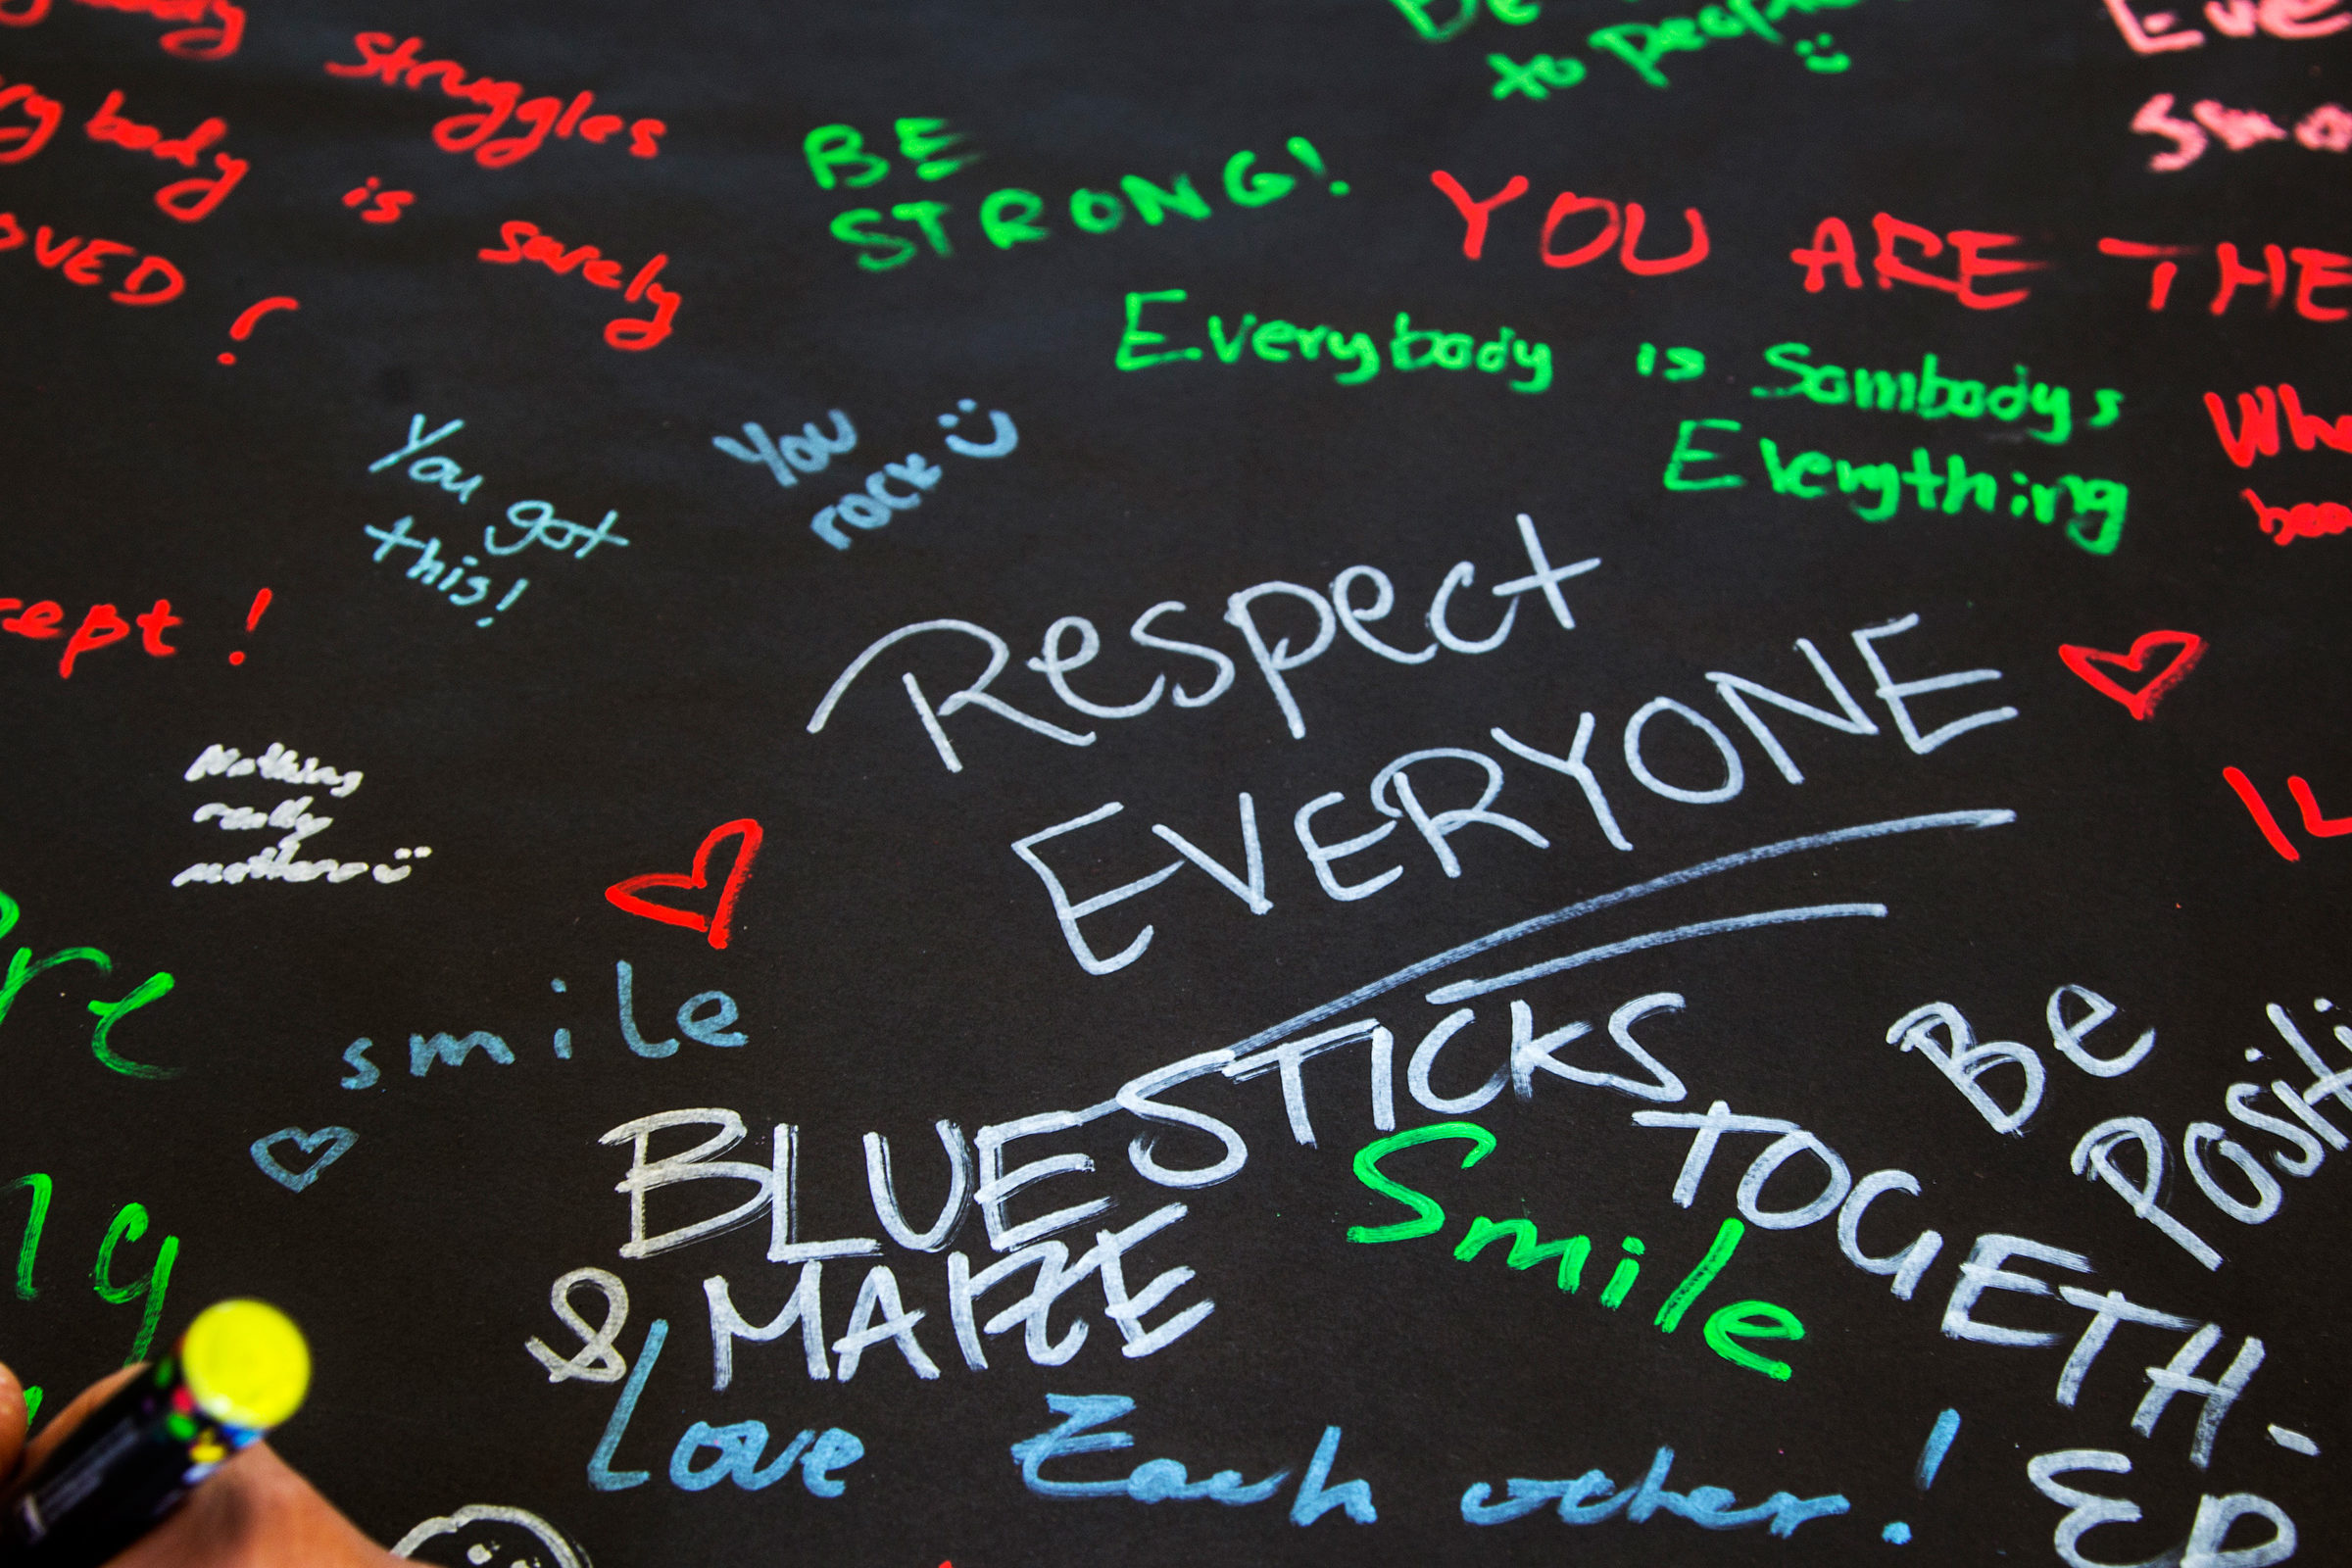 Dozens of colorful messages of positivity written on black paper with a hand holding a yellow marker in the foreground